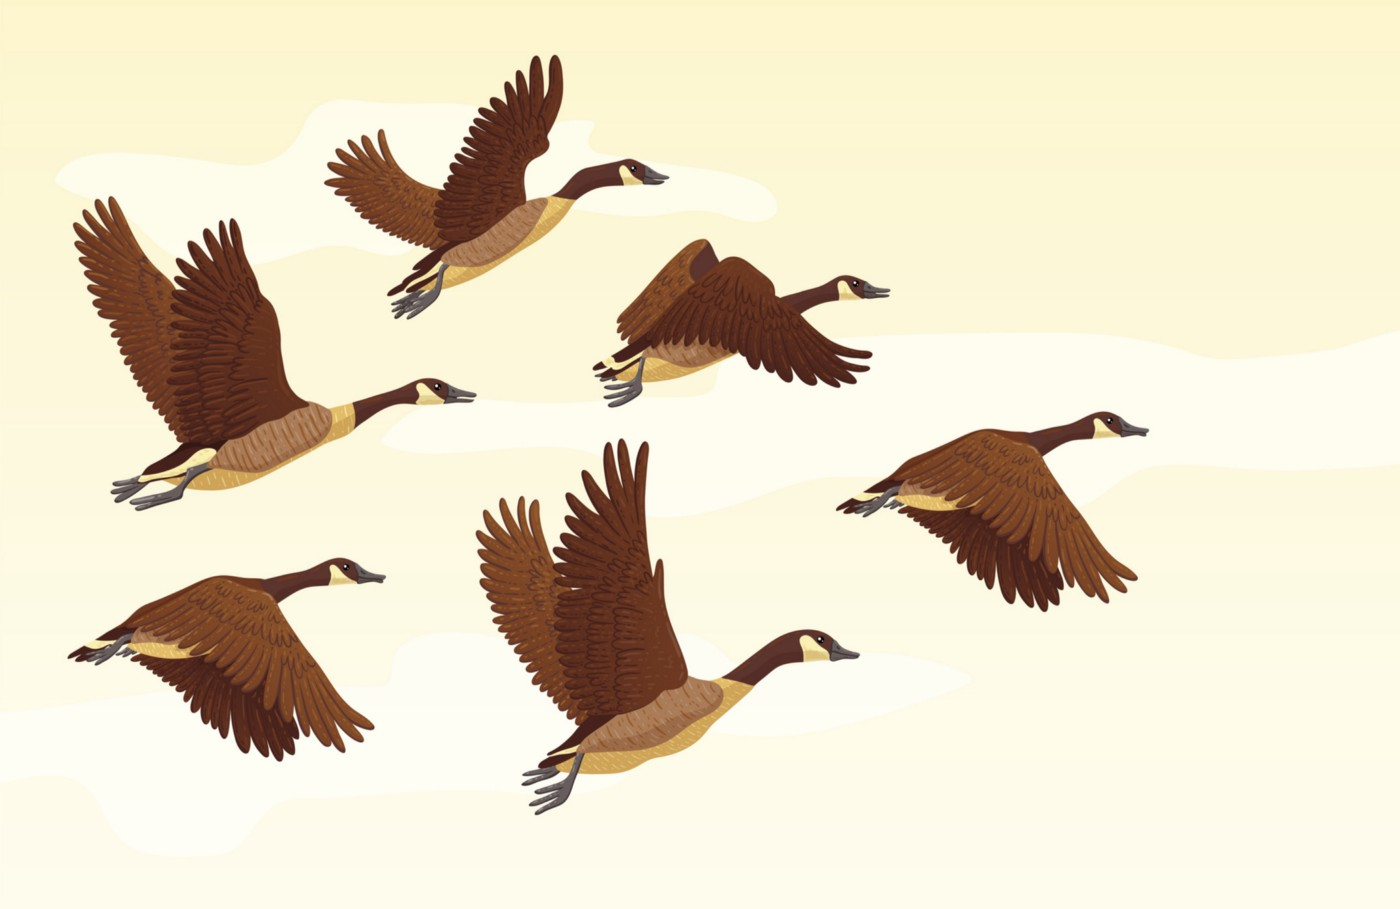 Illustration of flock of Canadian geese flying